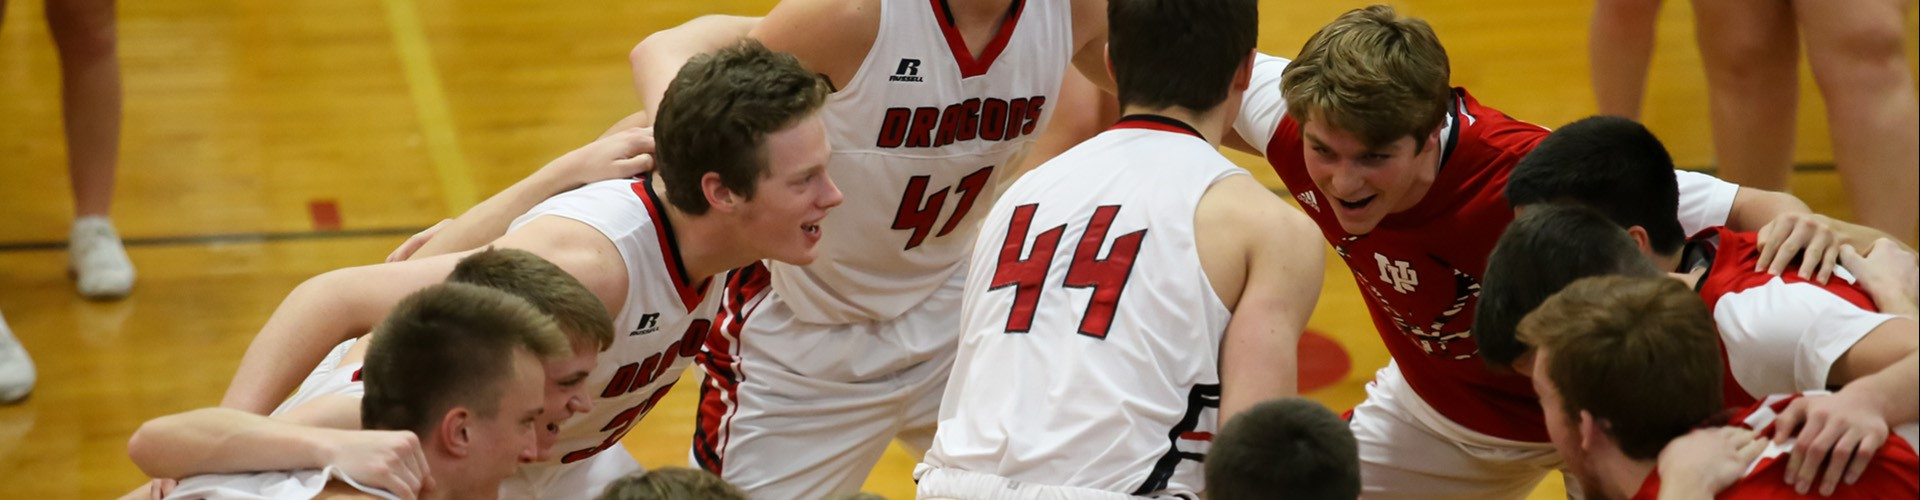 New Palestine High School Boys Basketball team